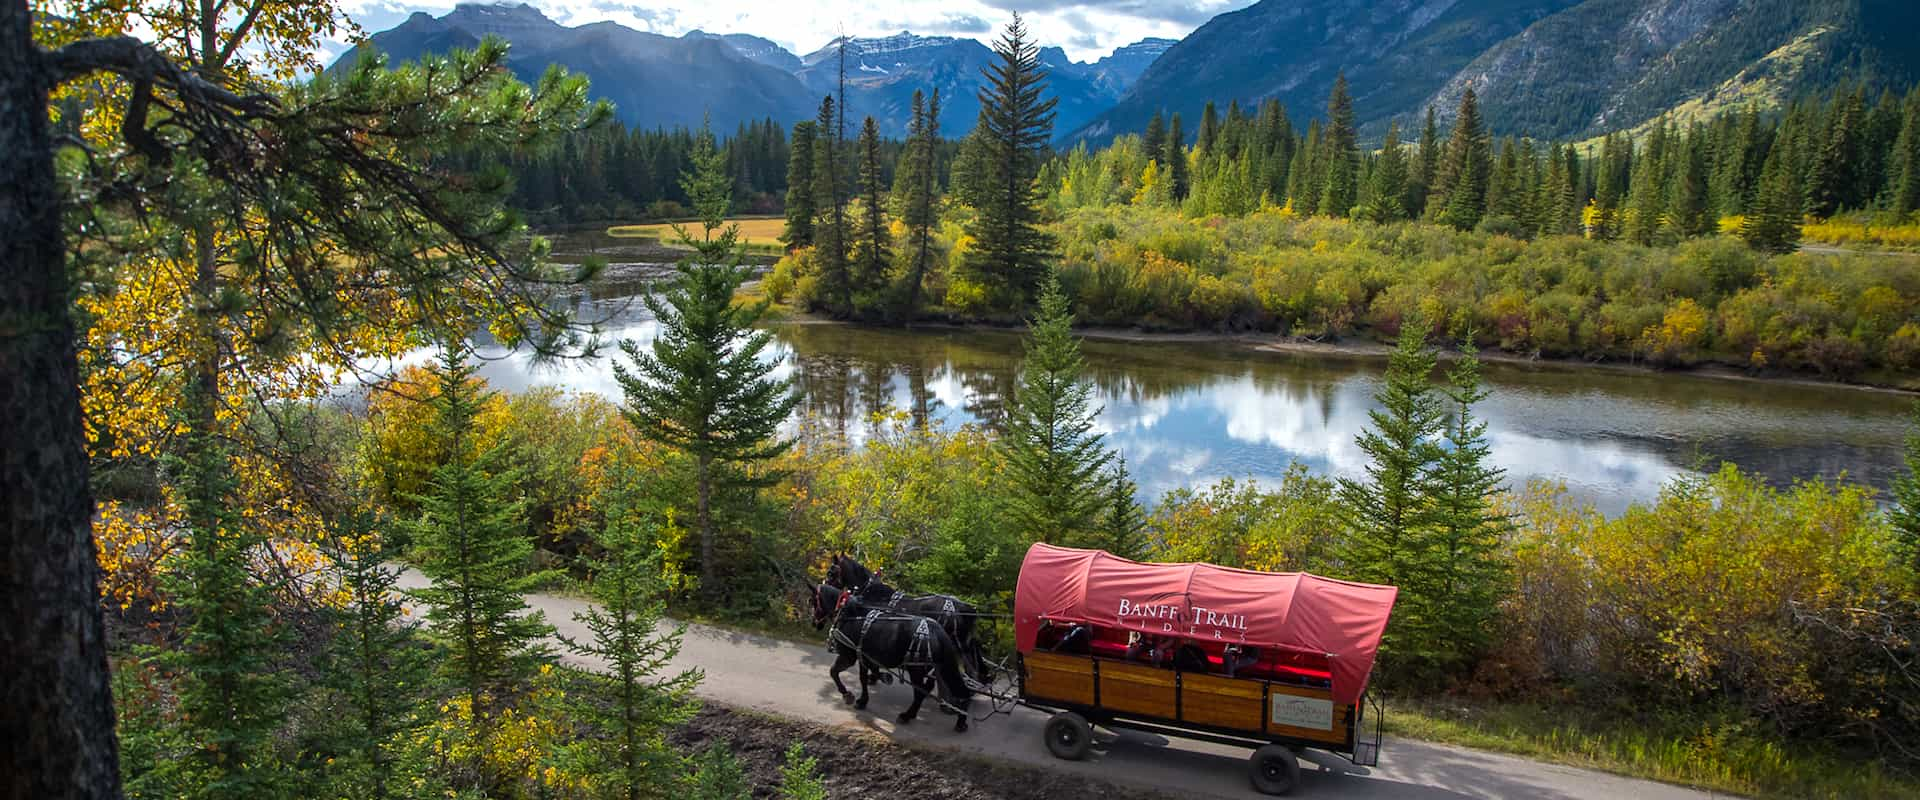 Cowboy Cookout Wagon Ride along the Bow River